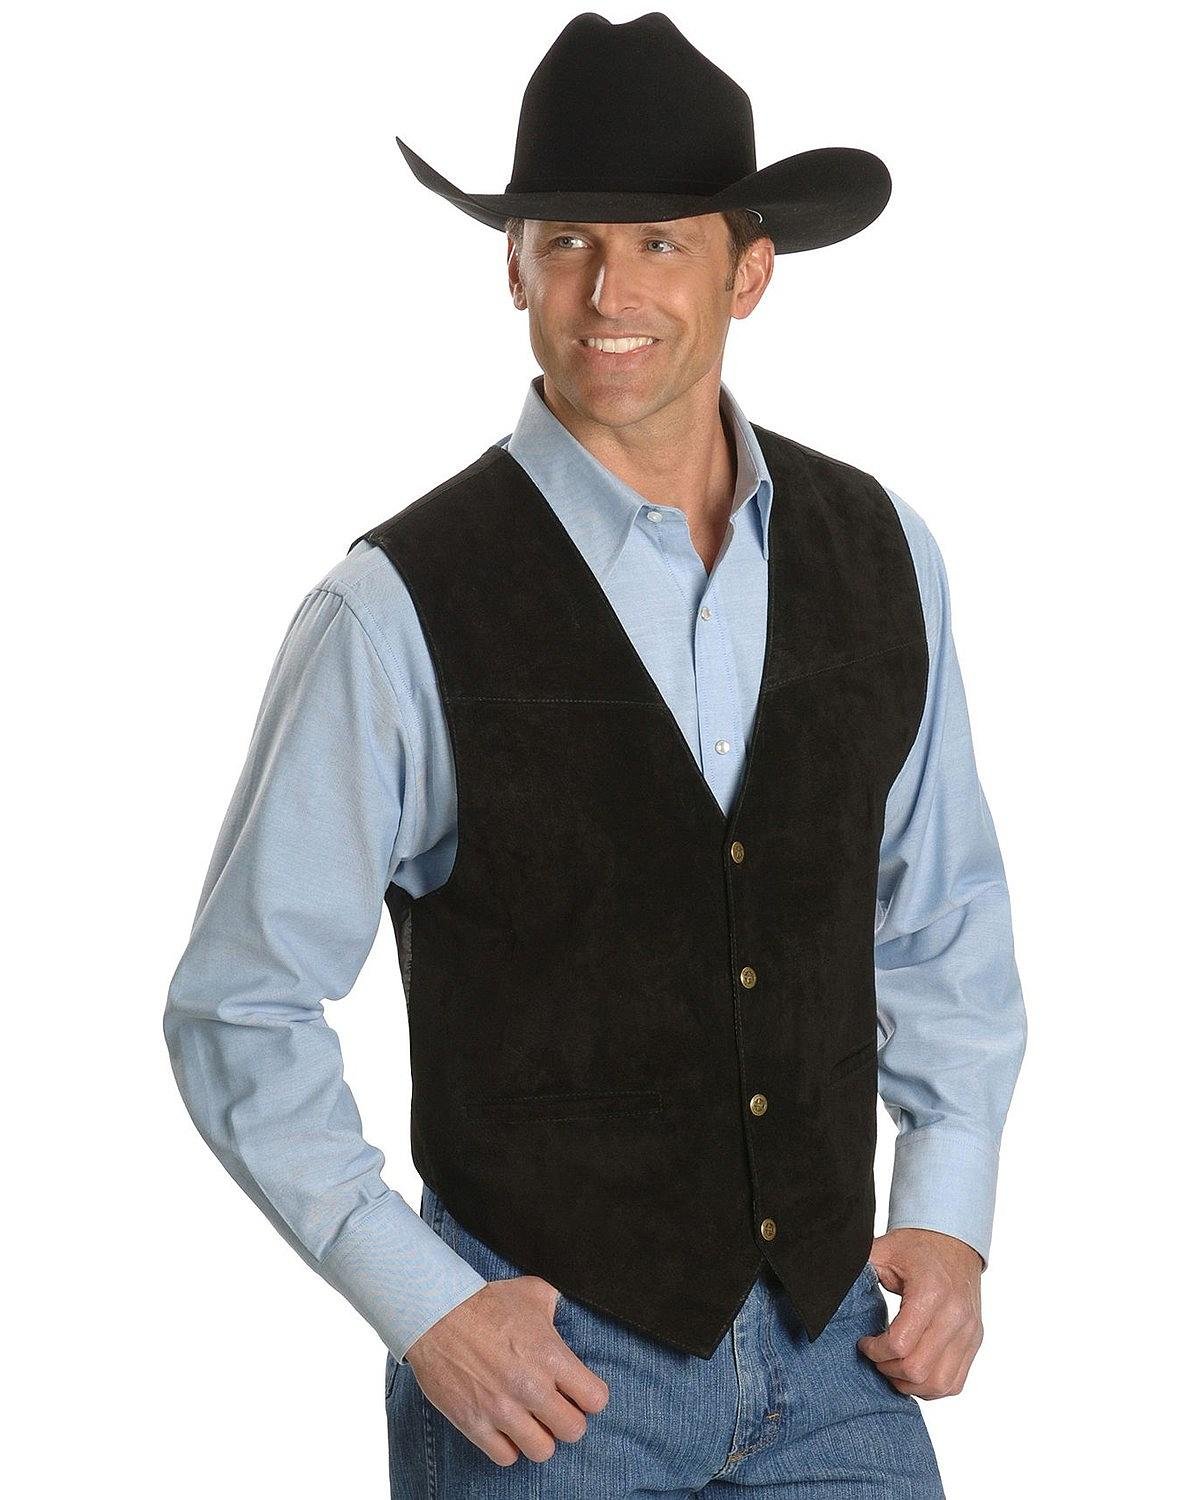 Western Express is a wholesale distributor of country western clothing and accessories. We carry cowboy hats, belts, buckles, western shirts, and more.